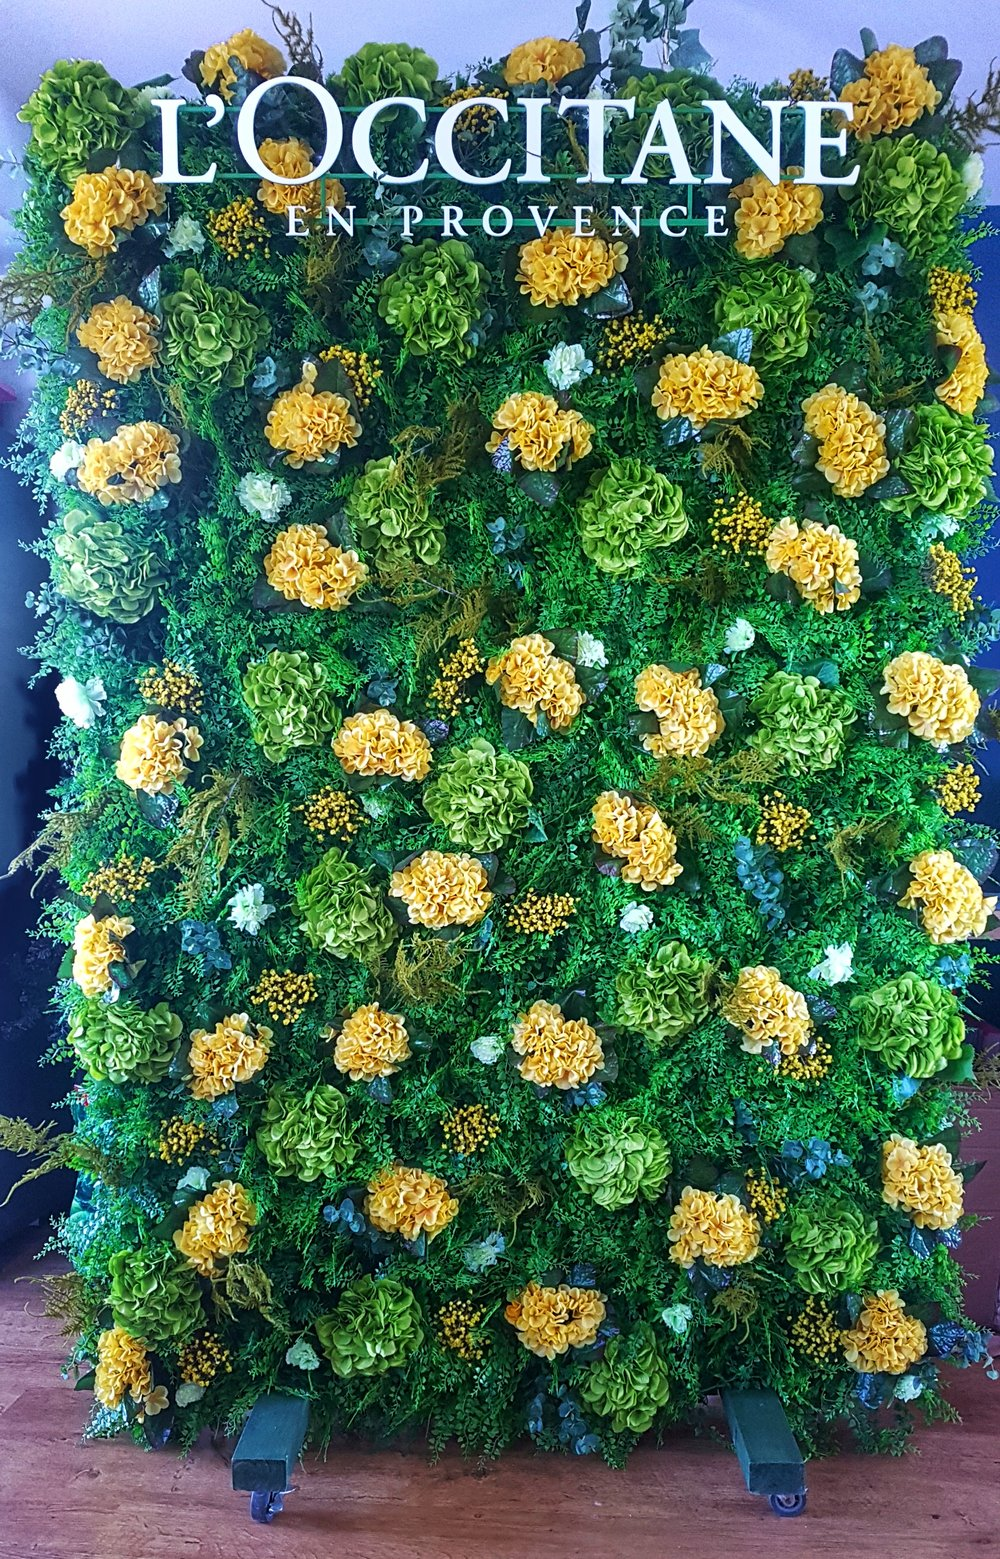 L'Occitane bespoke flower wall.jpeg